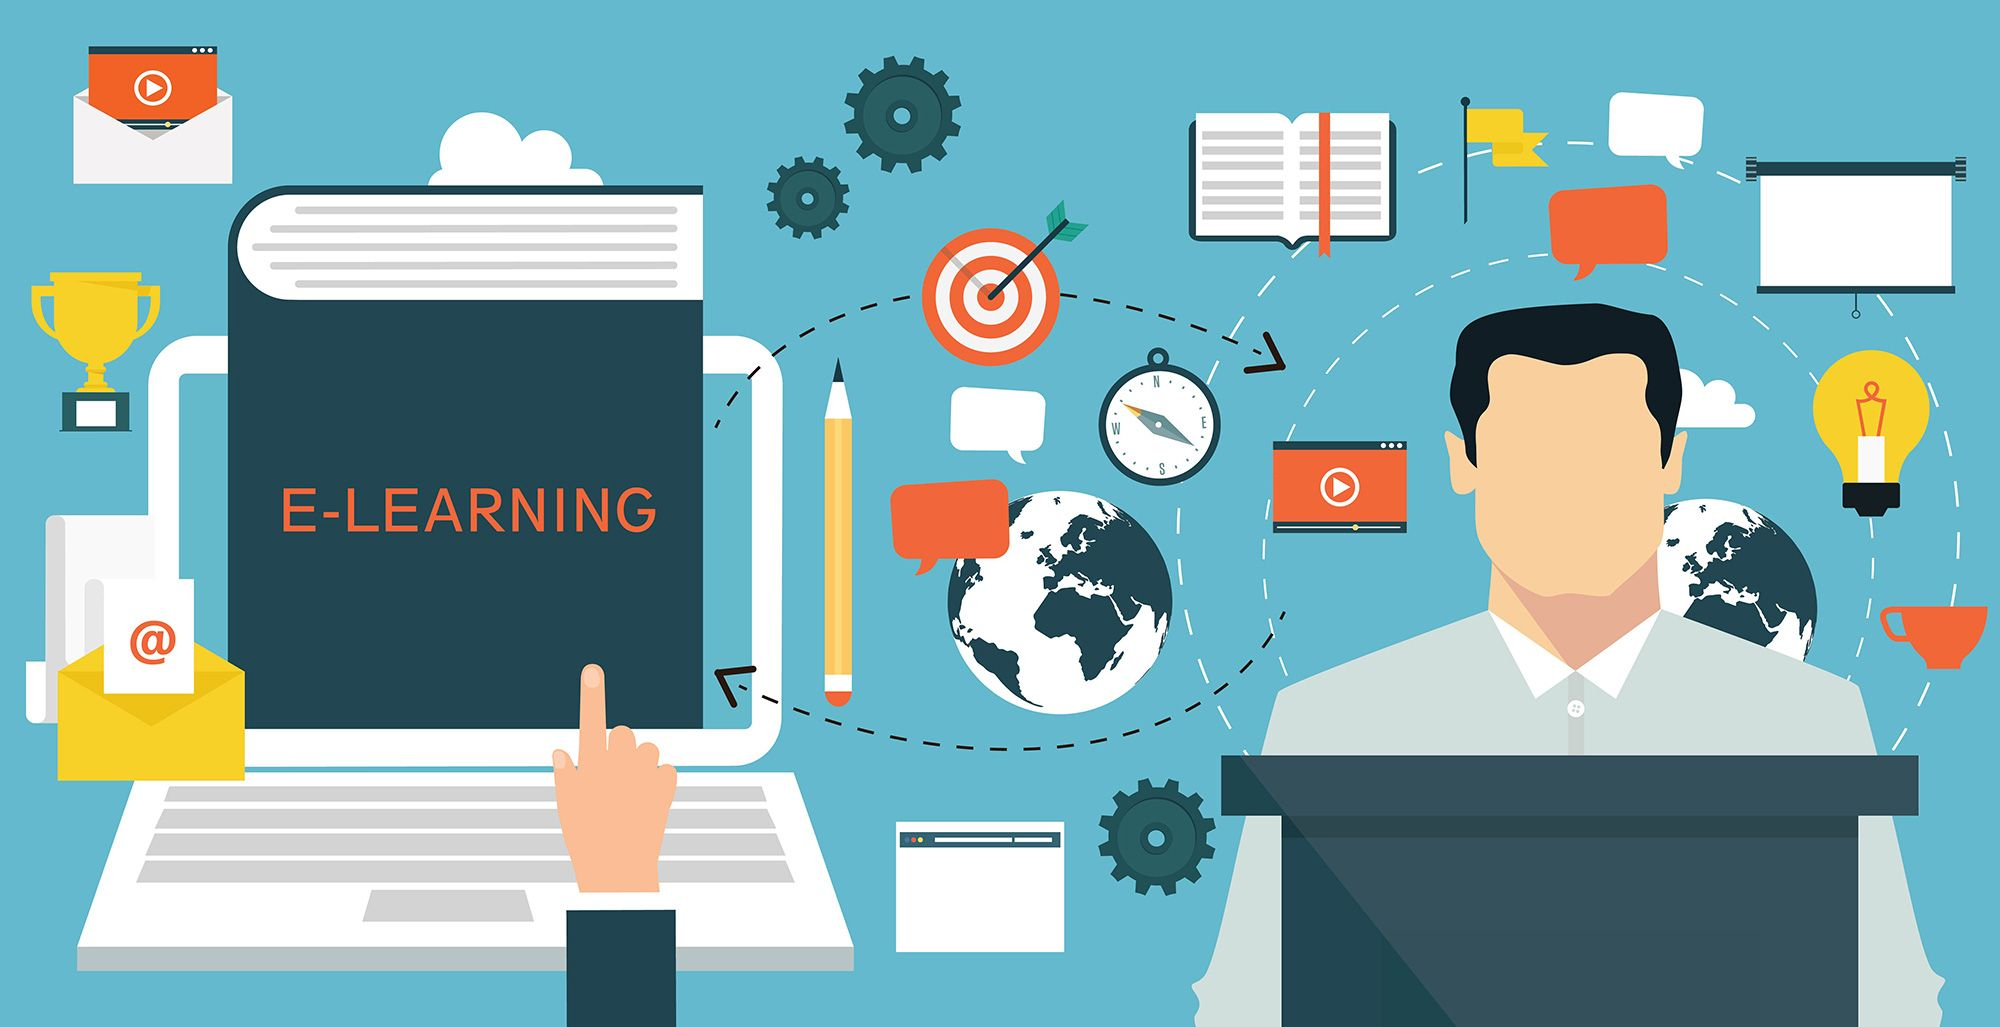 e-learning-chamboule-formation-professionnelle-thinkovery